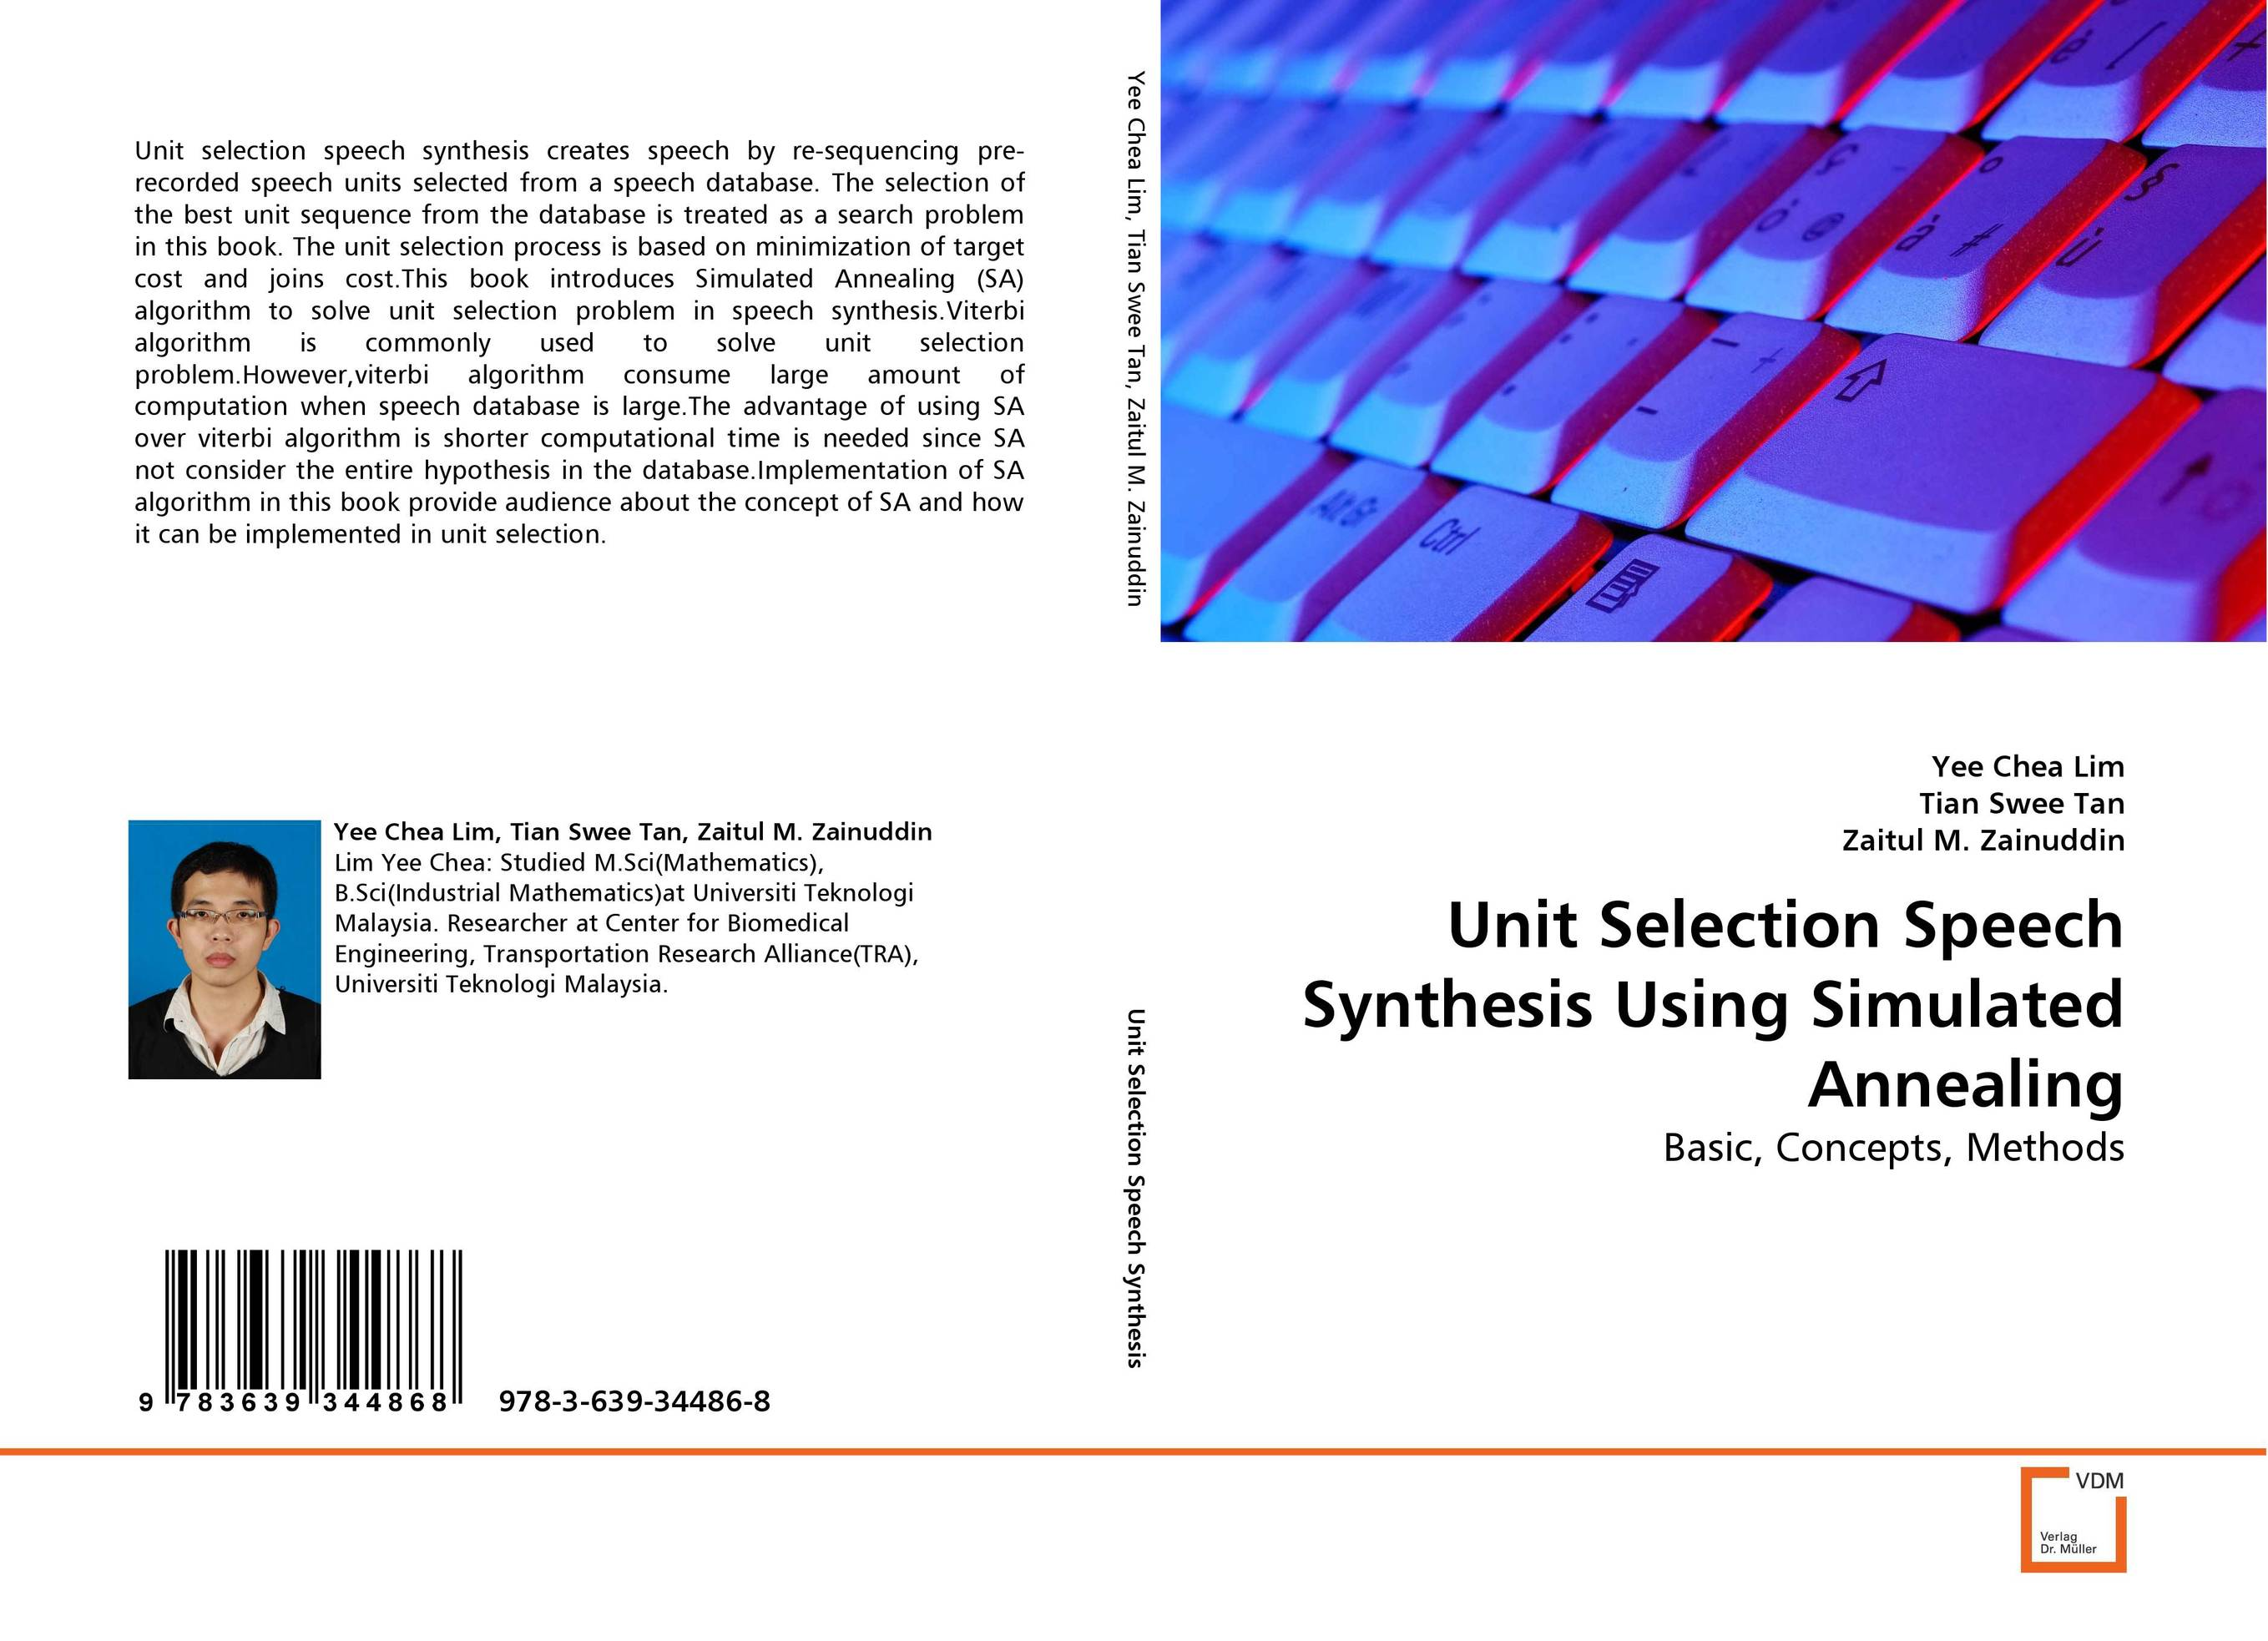 Unit Selection Speech Synthesis Using Simulated Annealing